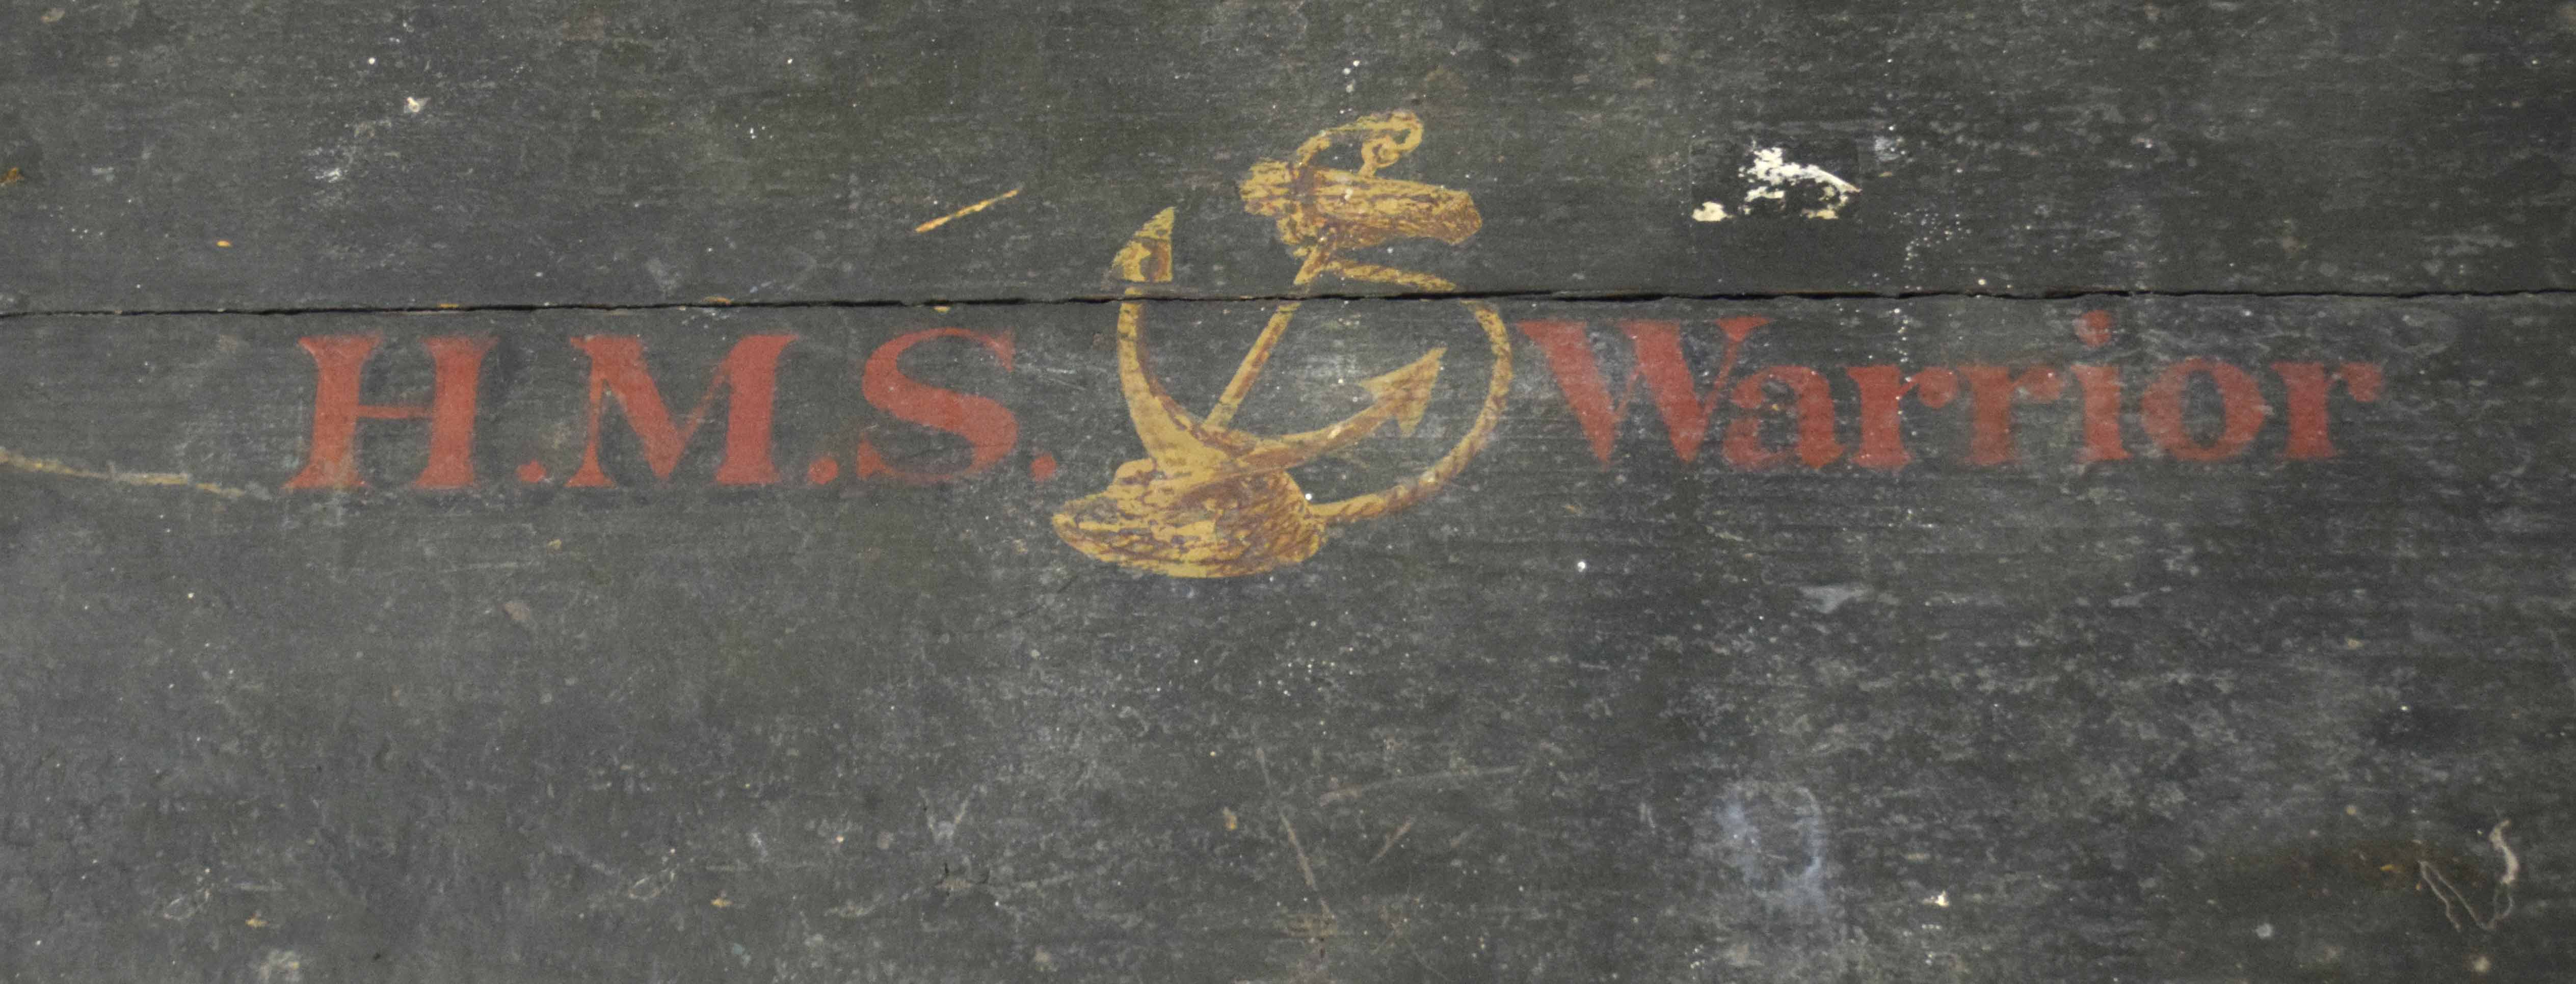 """20th century Naval painted wooden chest with """"HMS WARRIOR"""" on lid, and No 2 below lock plate, - Image 2 of 3"""